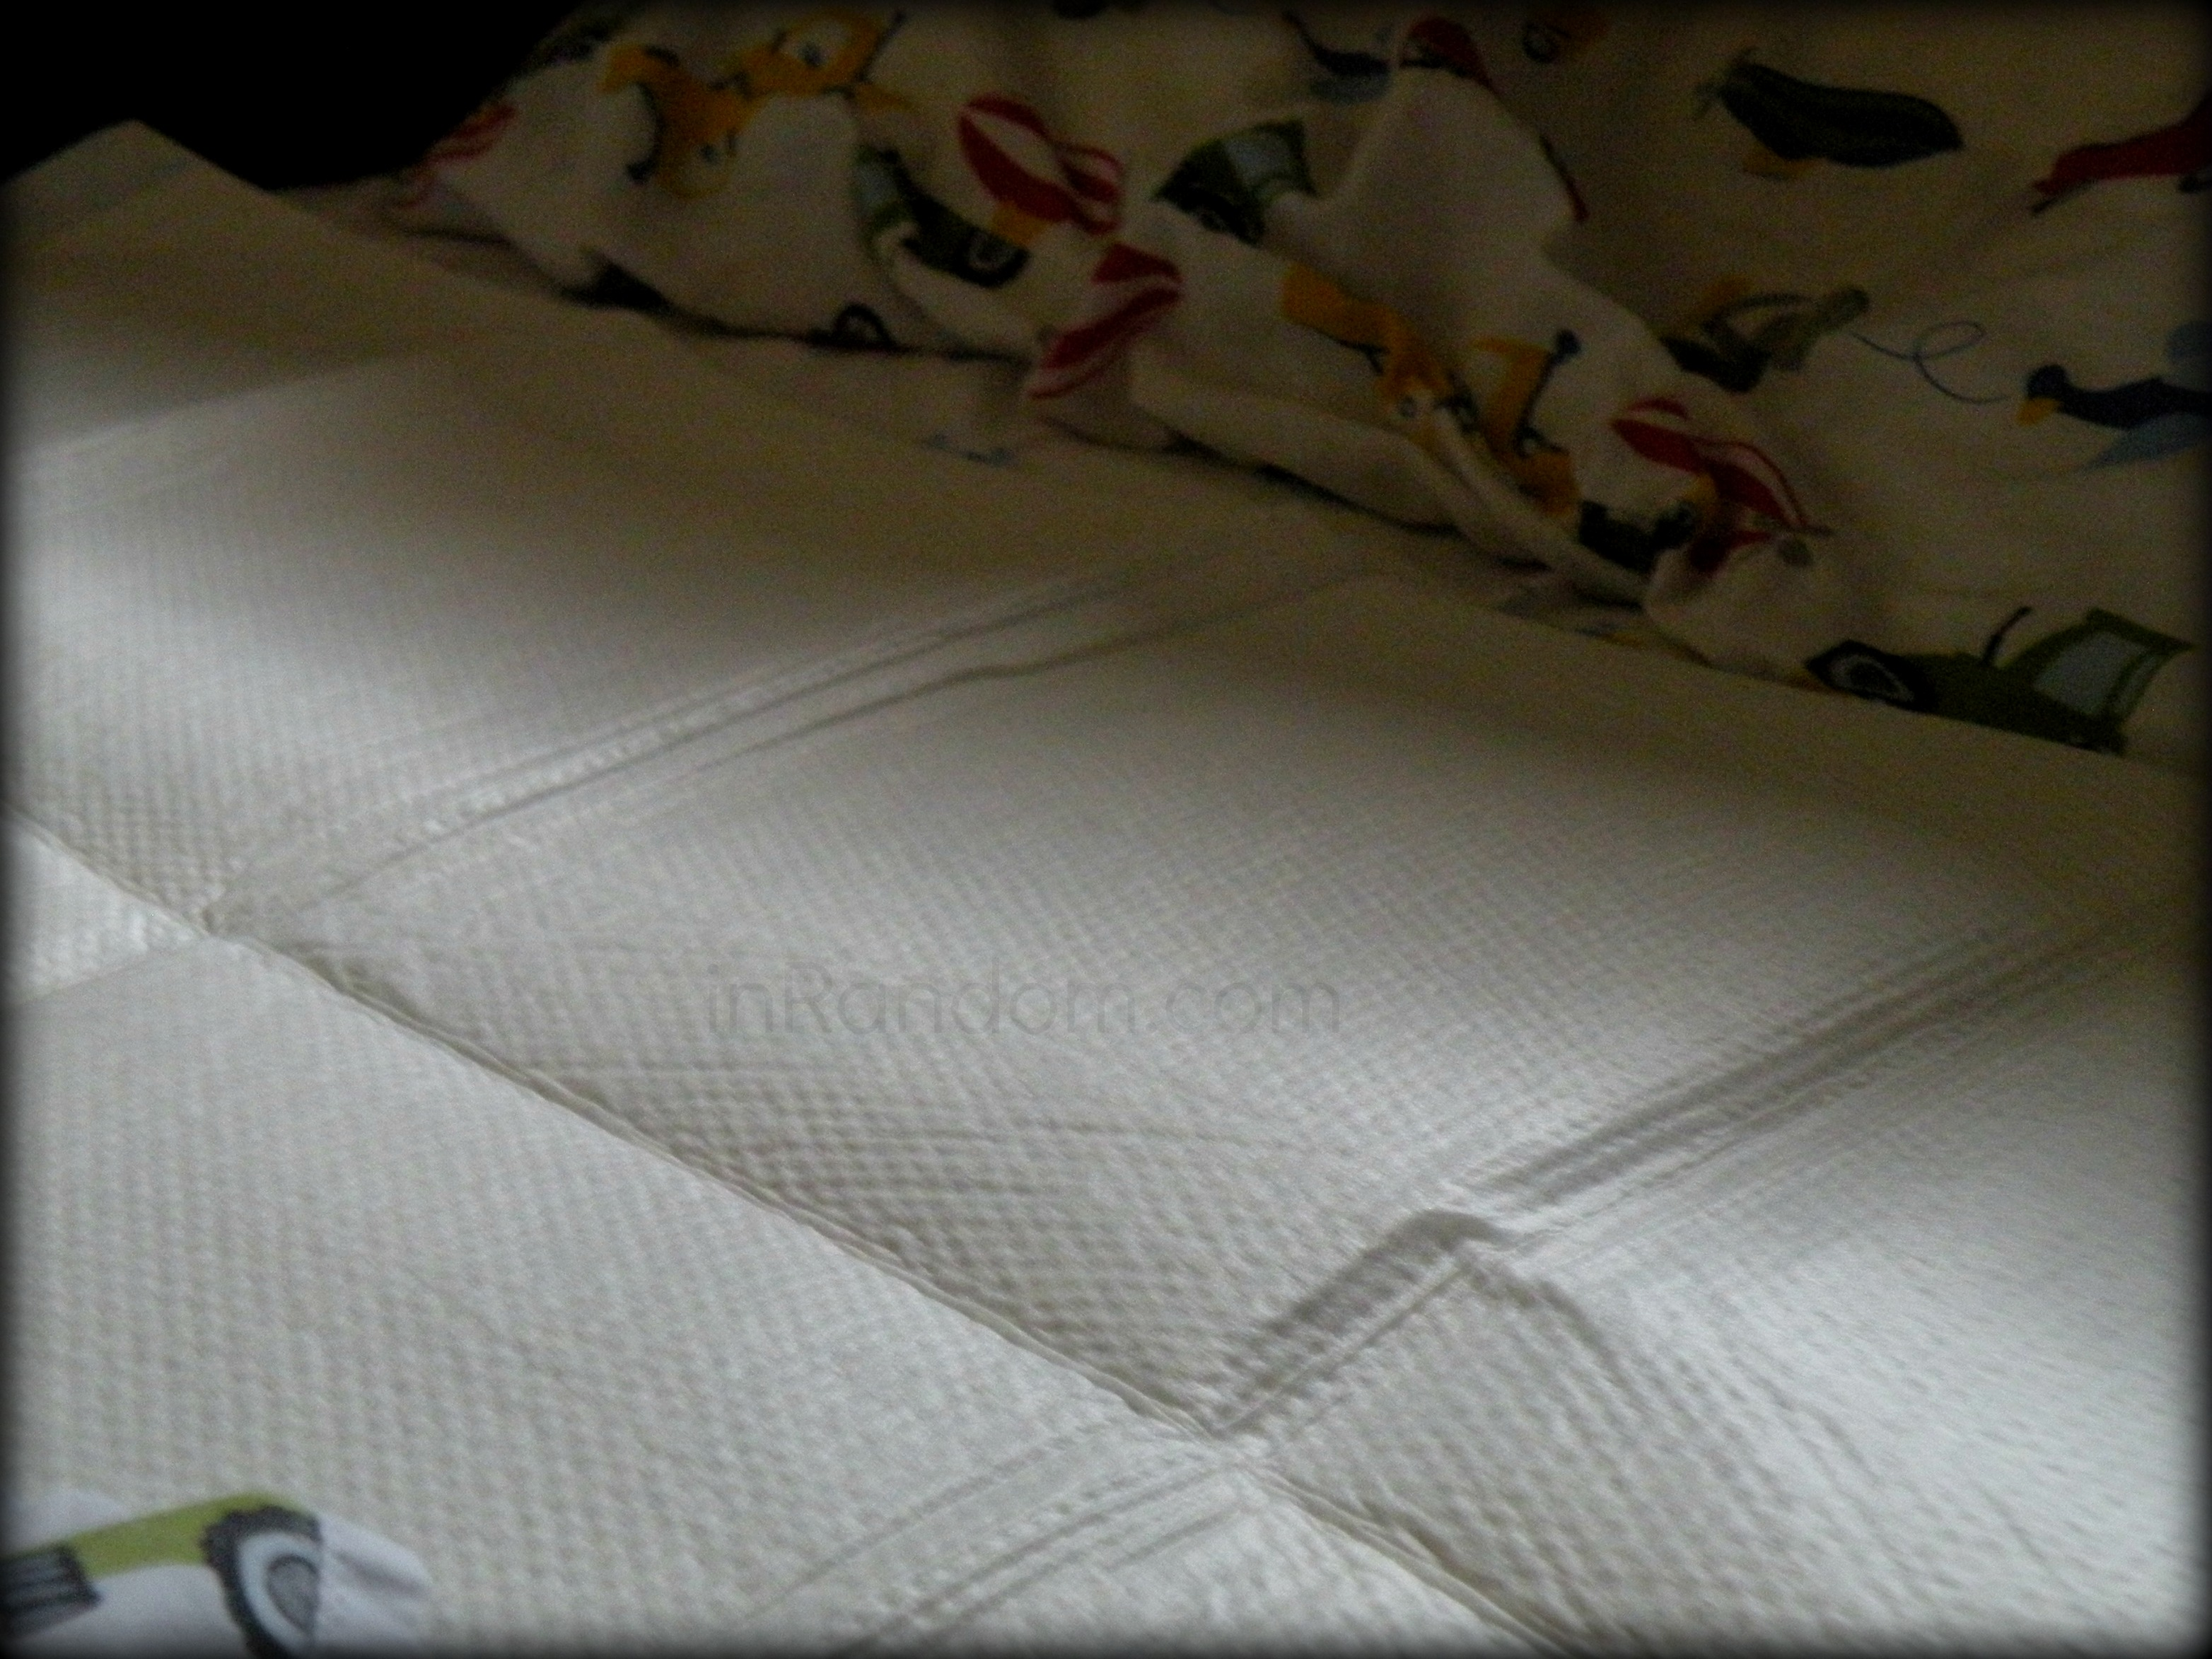 Information On Bedwetting Amp Goodnites Disposable Bed Mats